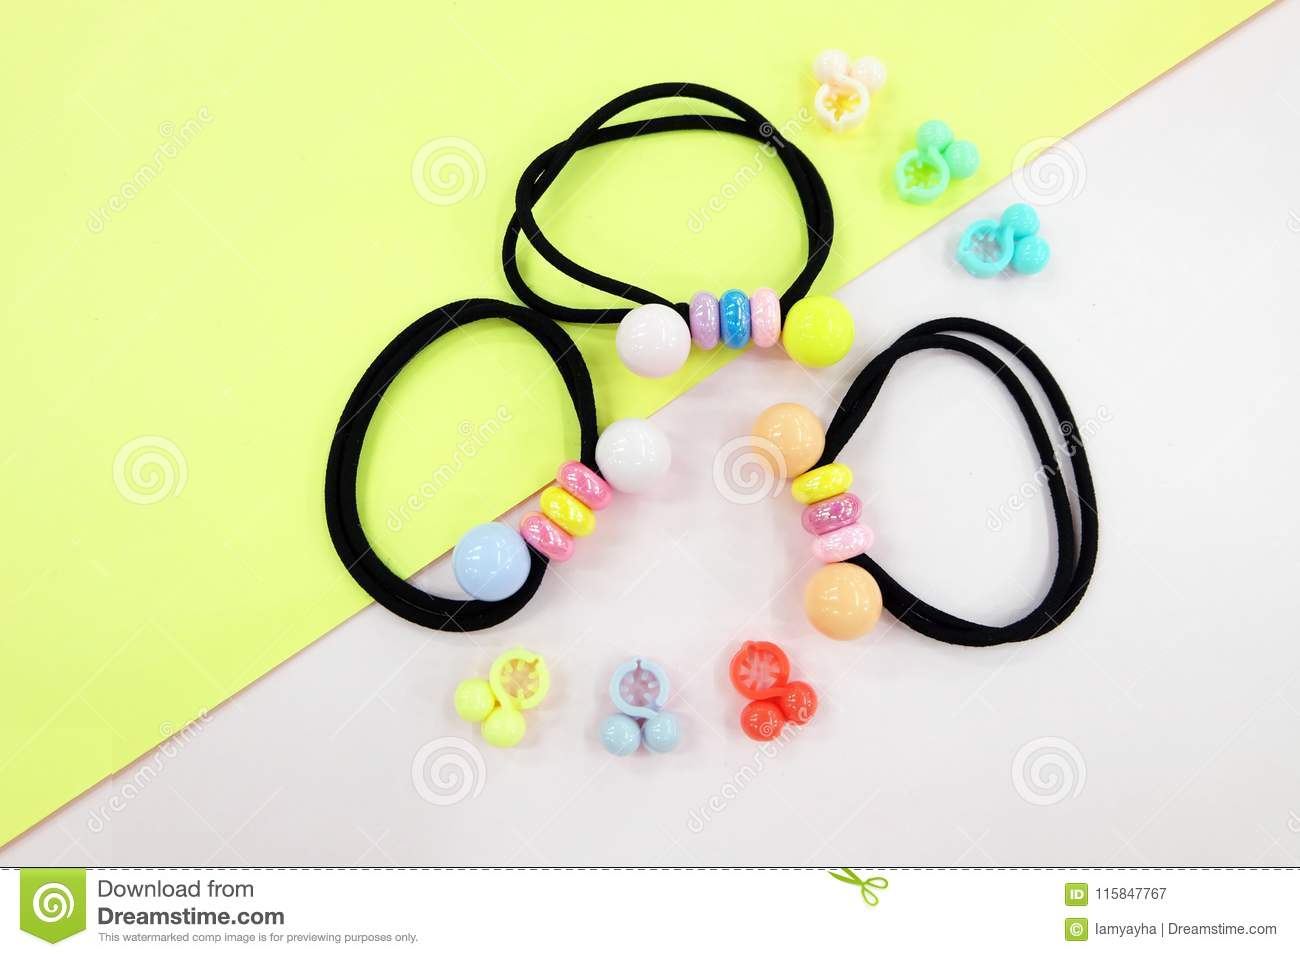 Black Rubber Band With Bead Fashion Accessories Hair Elastic Free Space Colorful Clip Isolated On Pink And Yellow